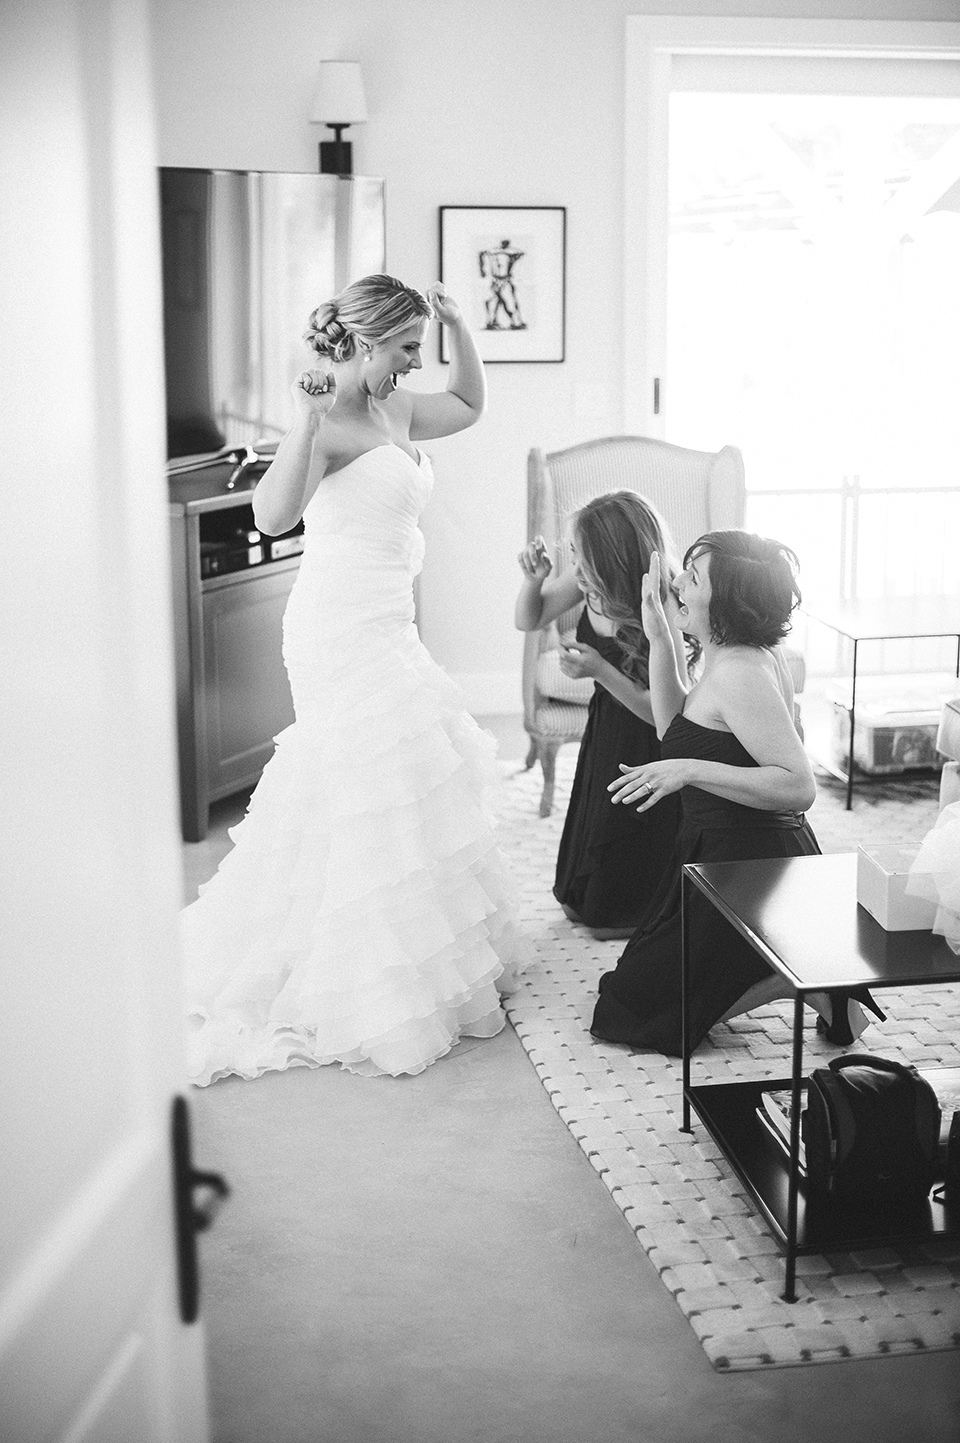 RyanParker_Photographer_Wedding_Portfolio_DSC_1298.jpg